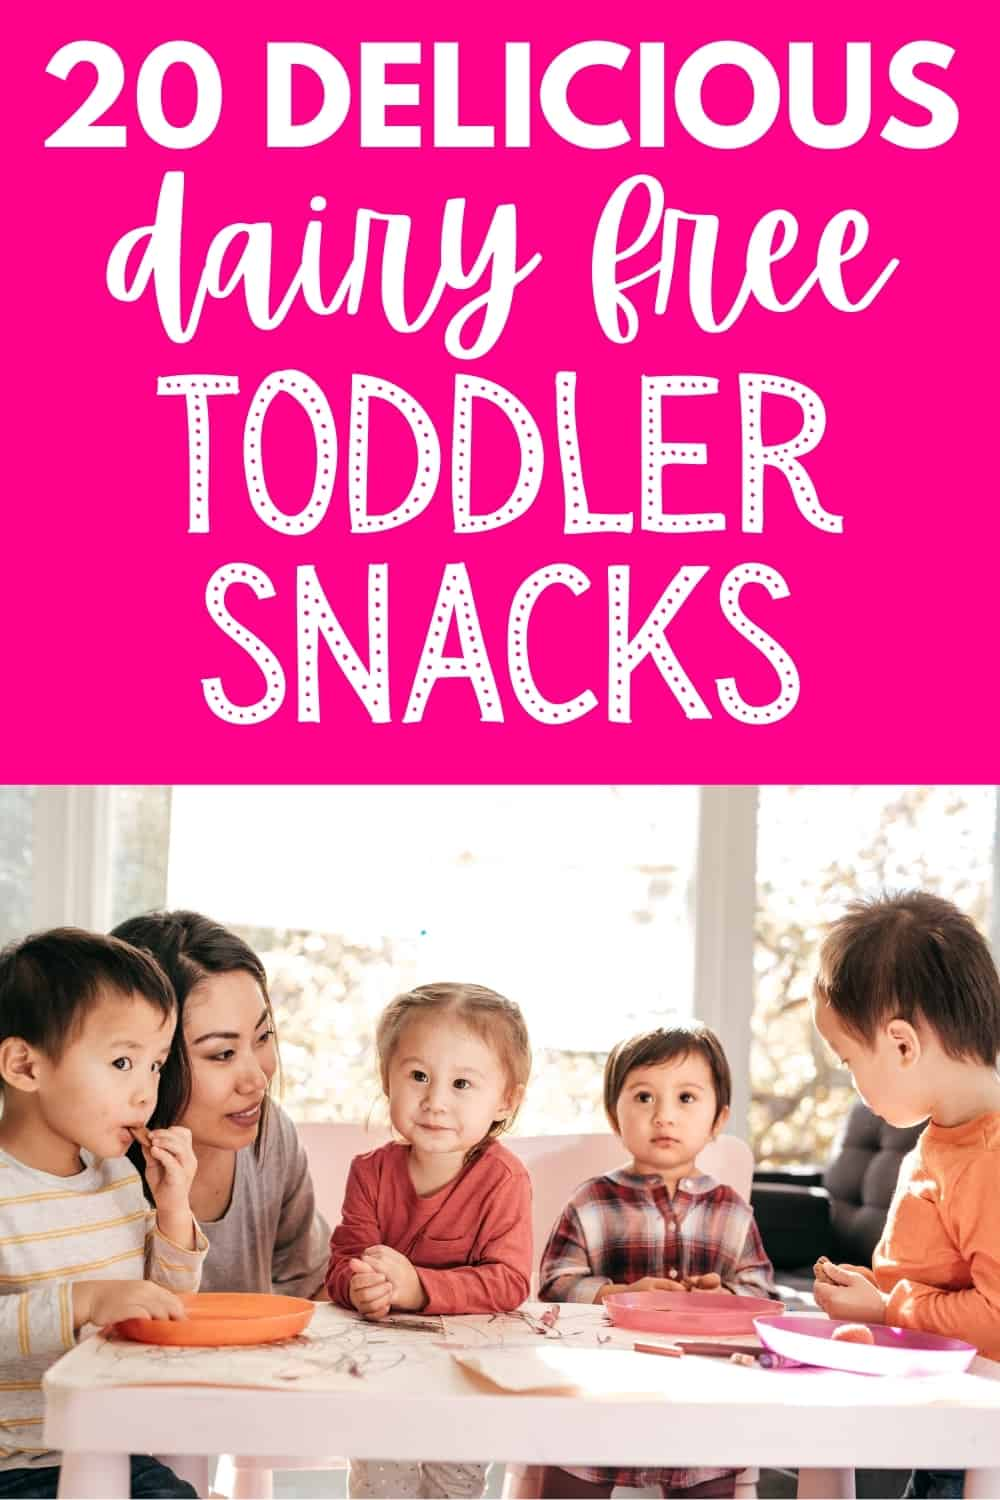 several toddlers eating snacks with a text overlay that says 20 dairy free toddler snacks